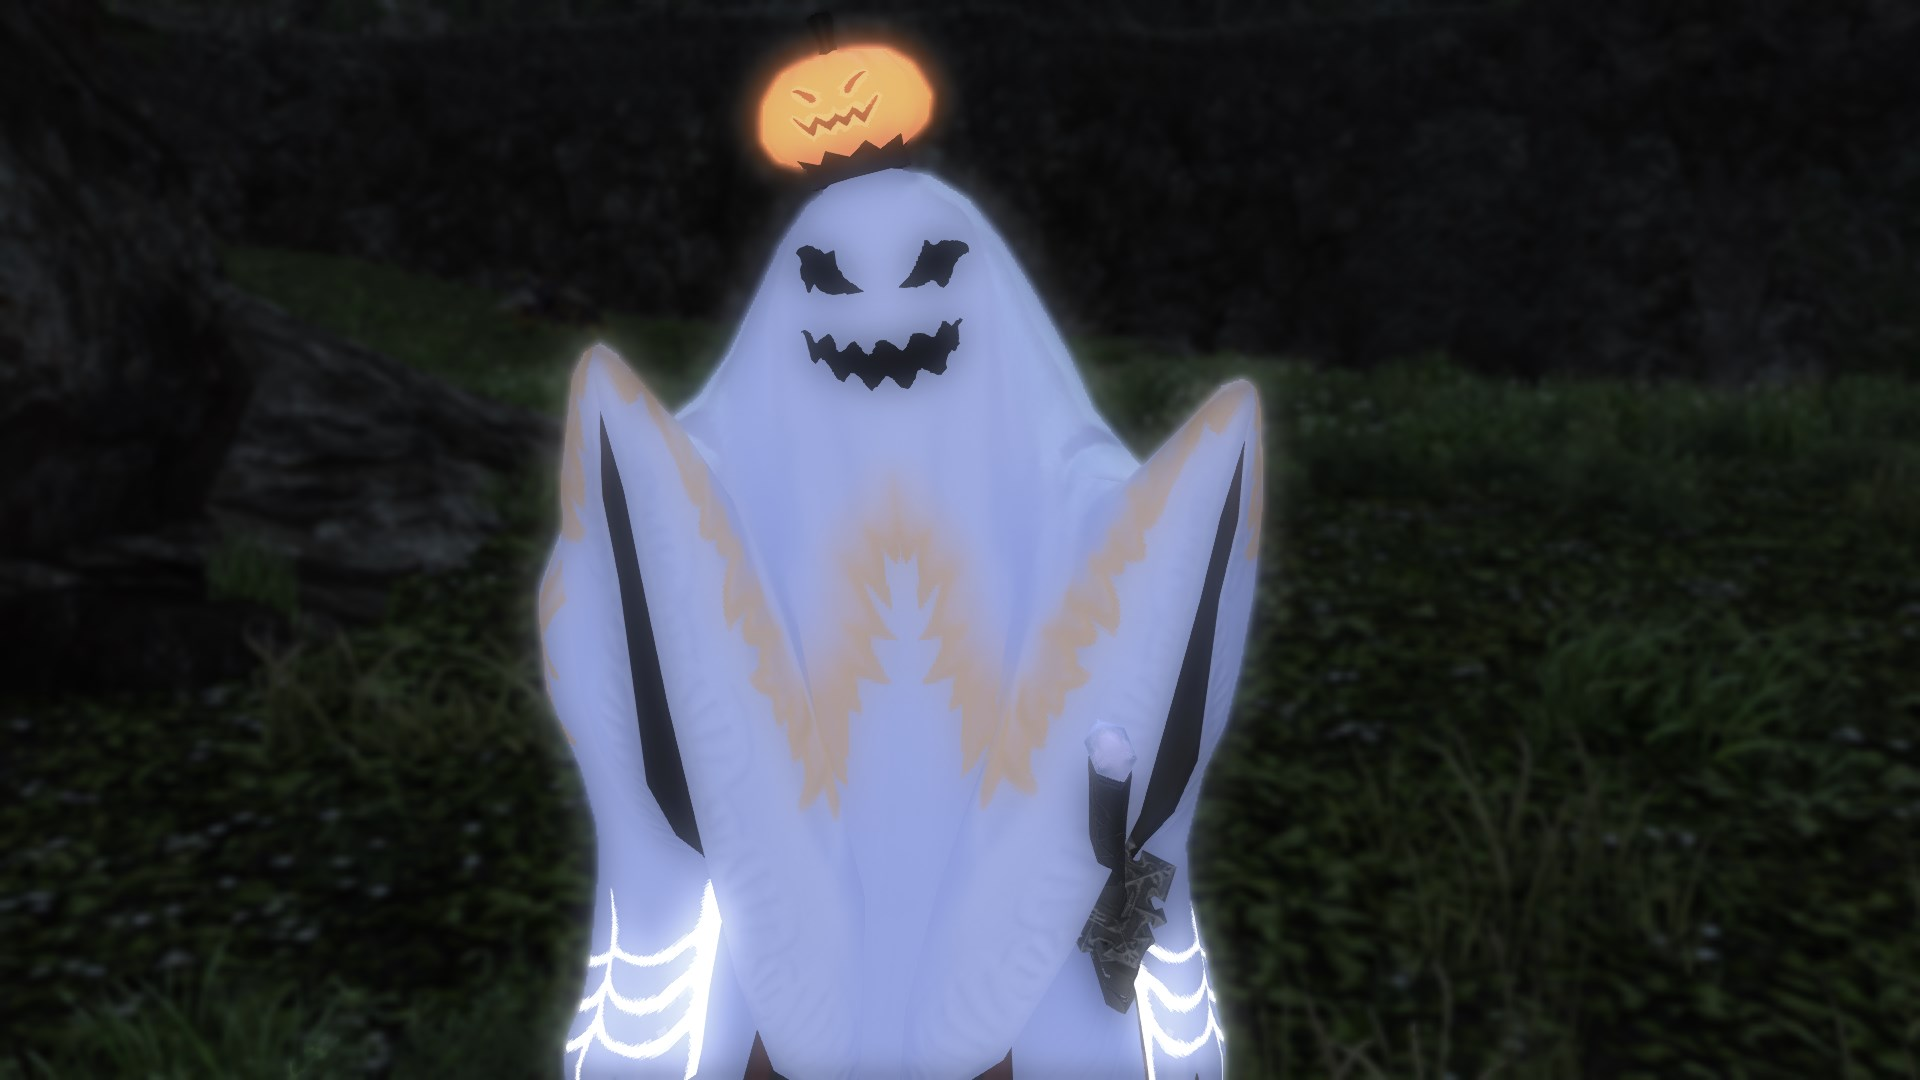 My Final Fantasy 14 Halloween costume has made the cutscenes so much better